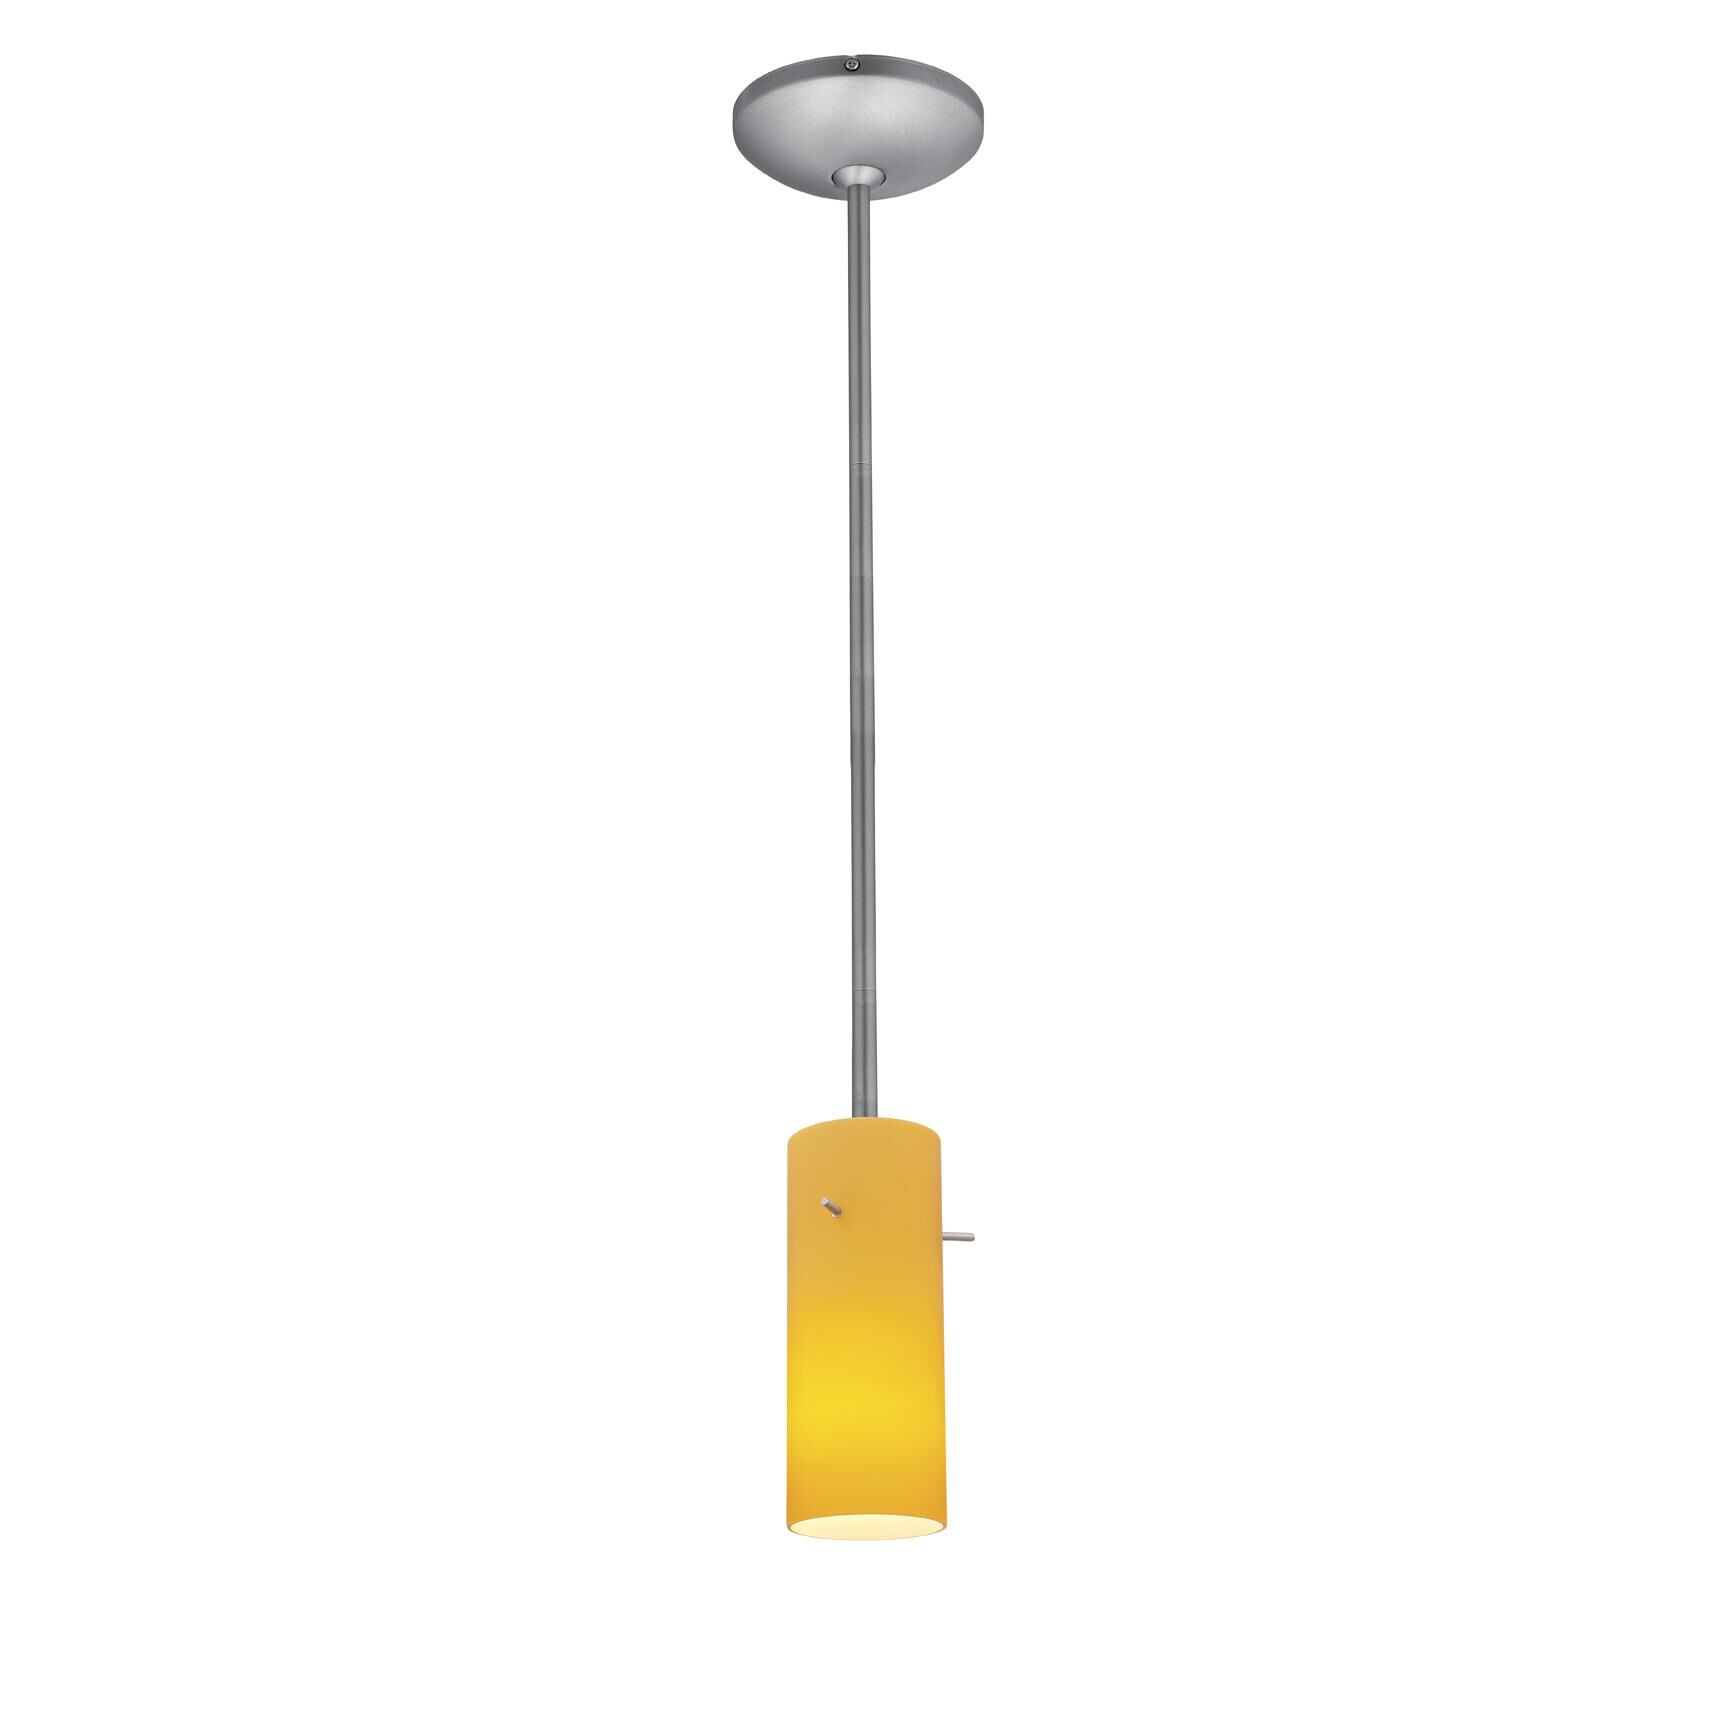 Access Lighting Cylinder 4 Inch Mini Pendant Cylinder 28030 1R BSAMB Modern Contemporary